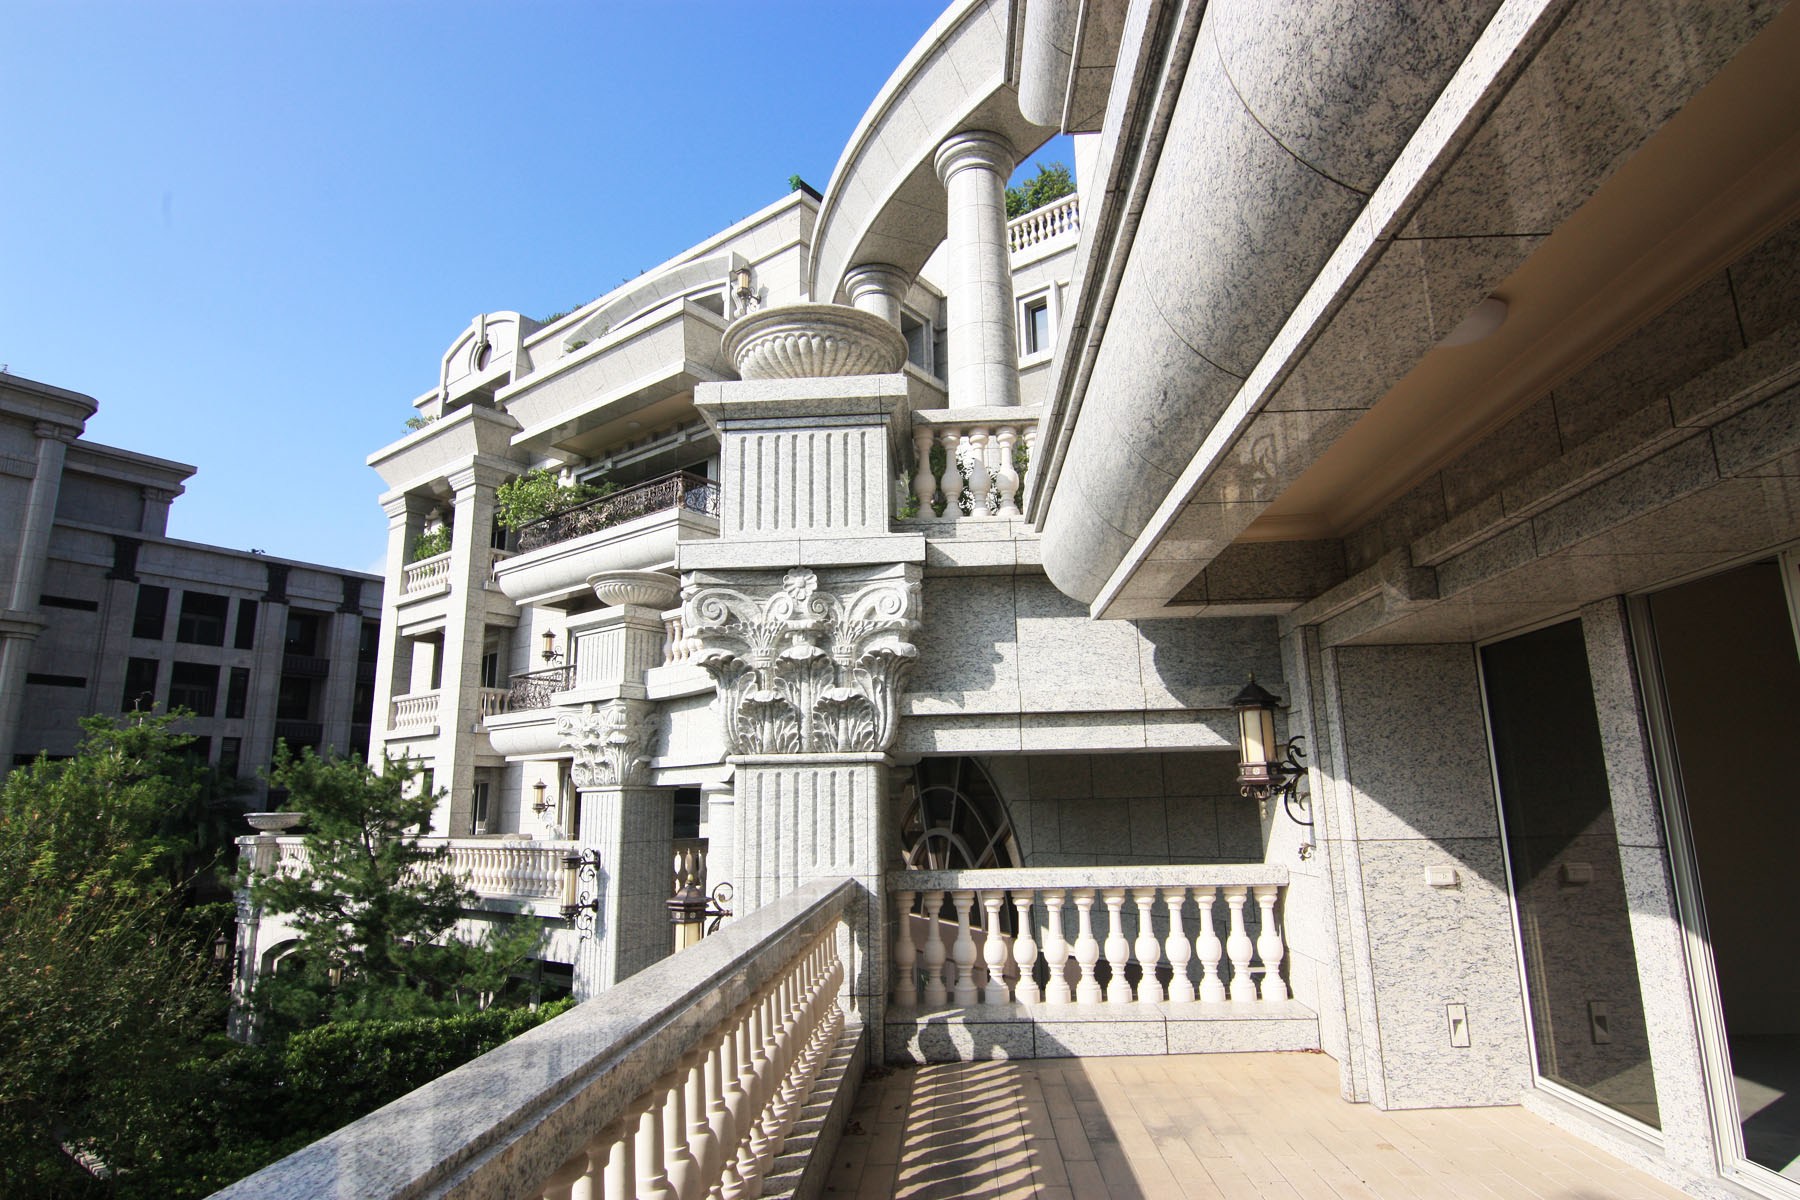 Condominium for Sale at Park Villa Sec. 7, Zhongshan N. Rd., Shilin Dist. Taipei City, 111 Taiwan